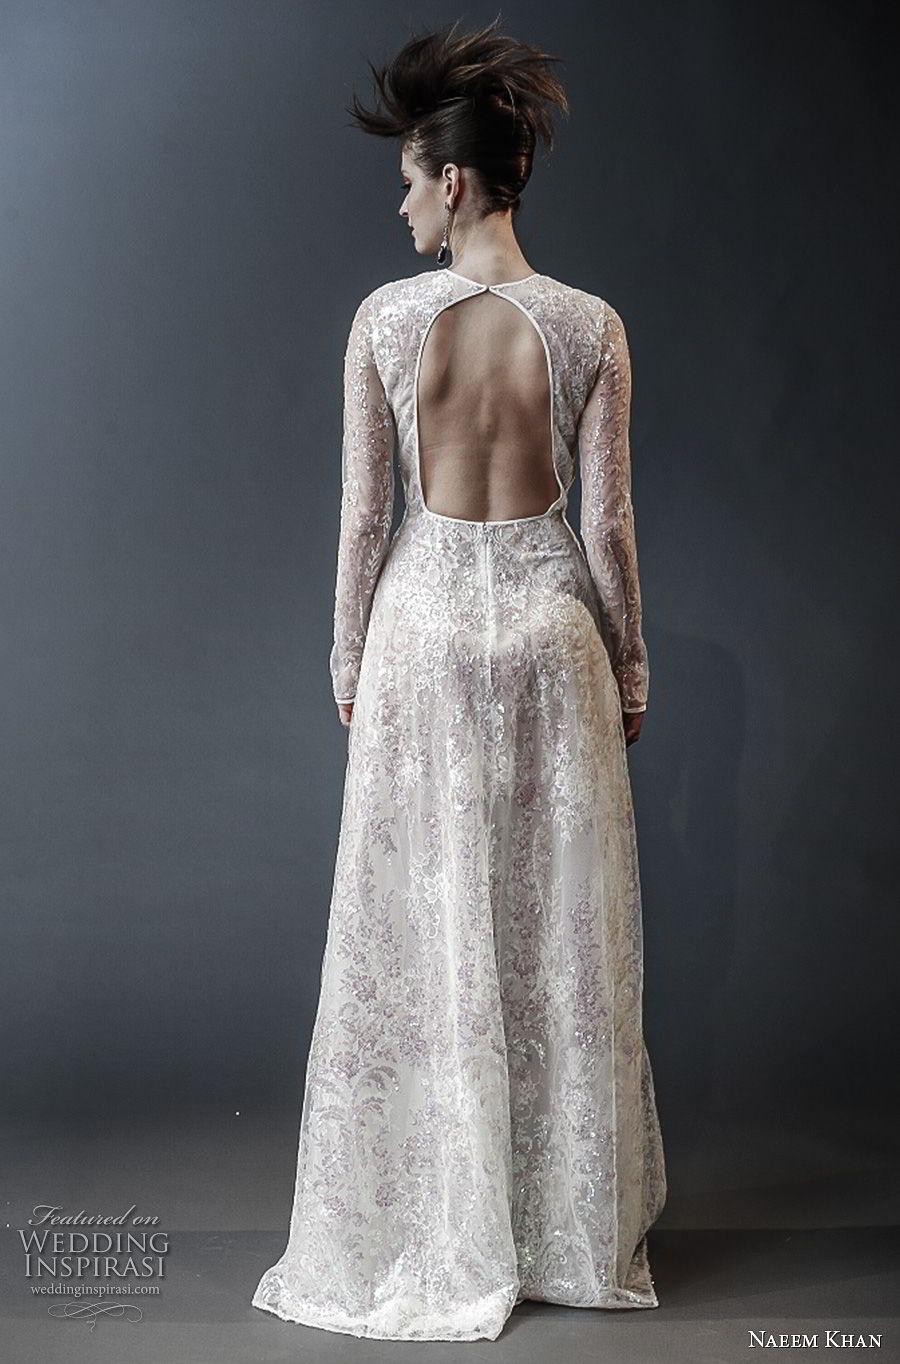 naeem khan spring 2019 bridal long sleeves jewel neck full embellishment modest modified a line wedding dress keyhole back (6) bv